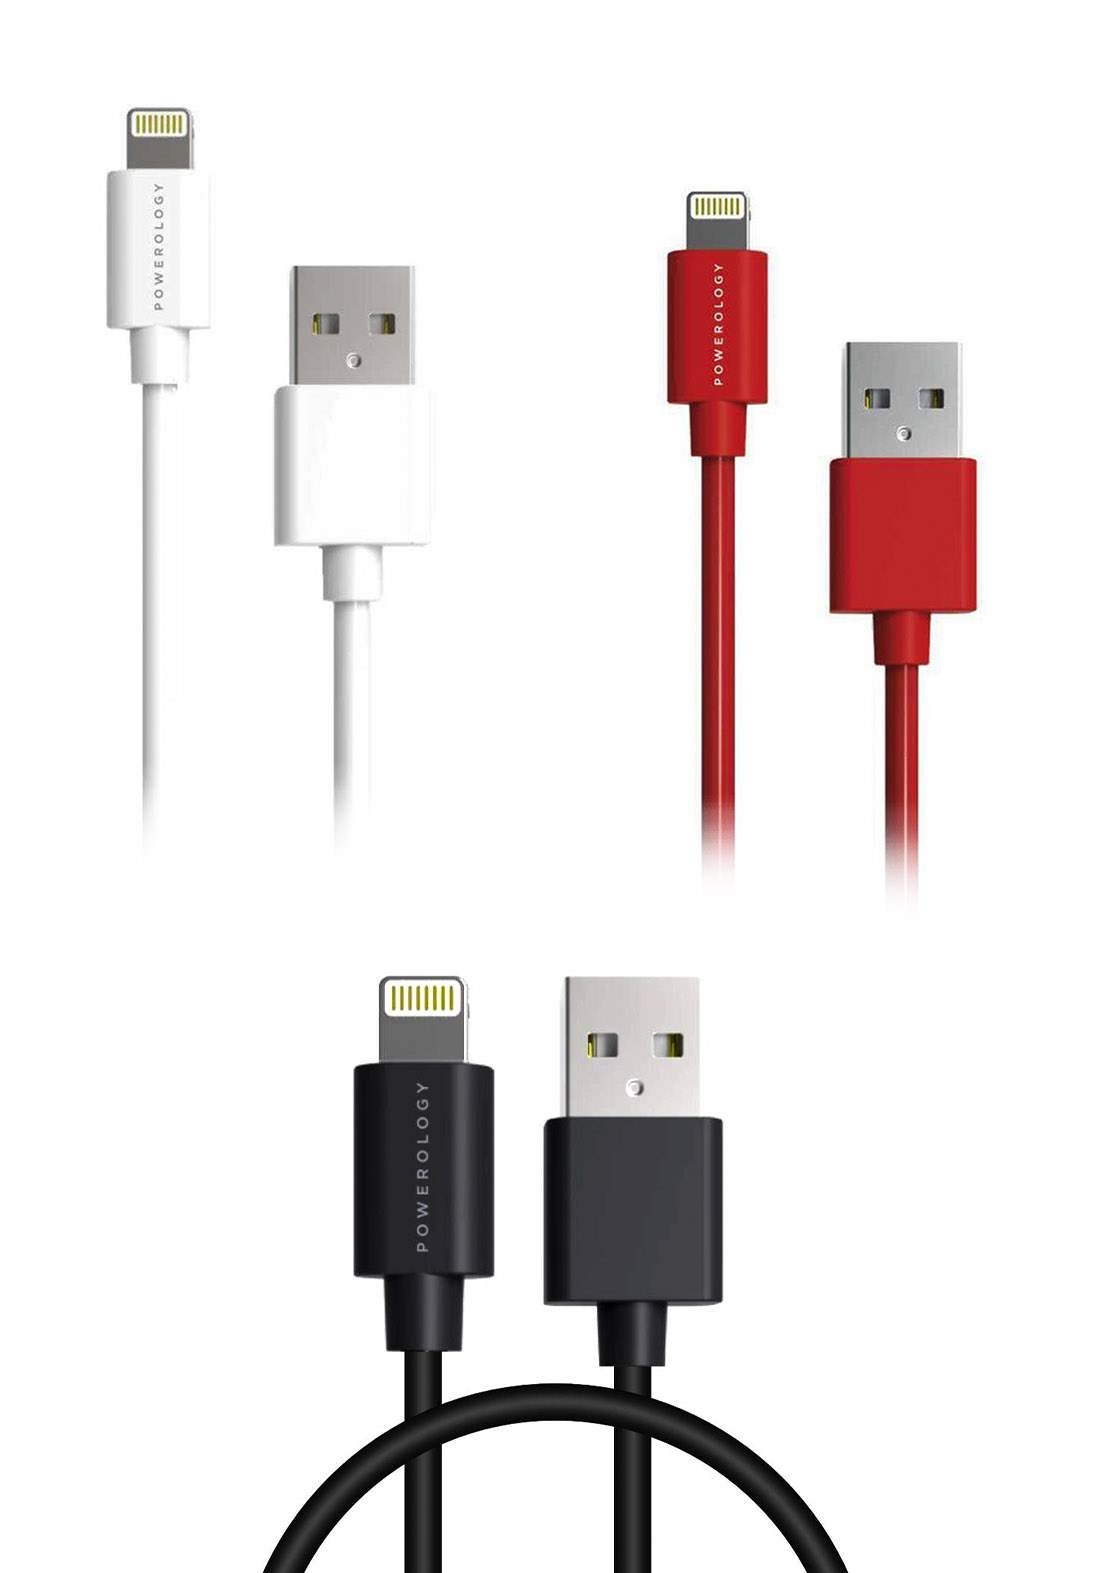 Powerology P12BL USB-A to Lightning Cable 1.2M كابل